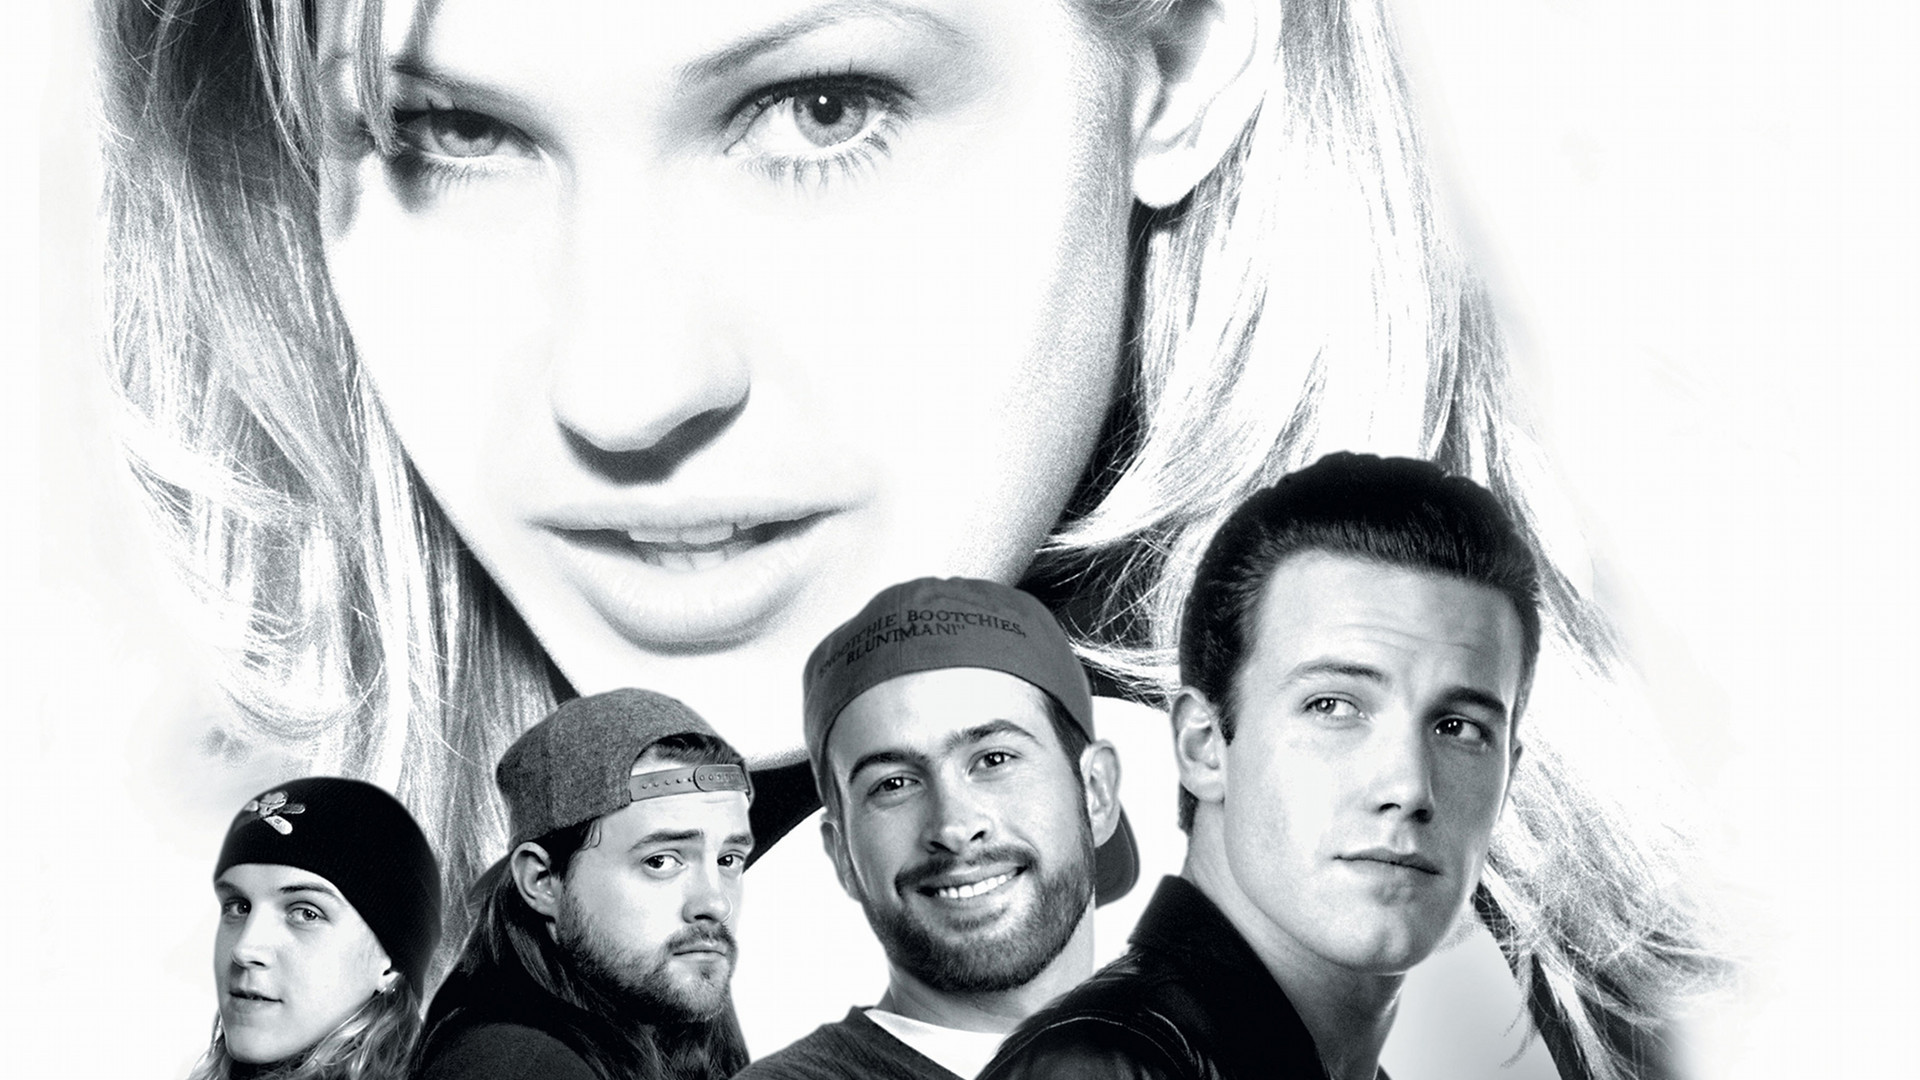 Is It Any Good? Chasing Amy